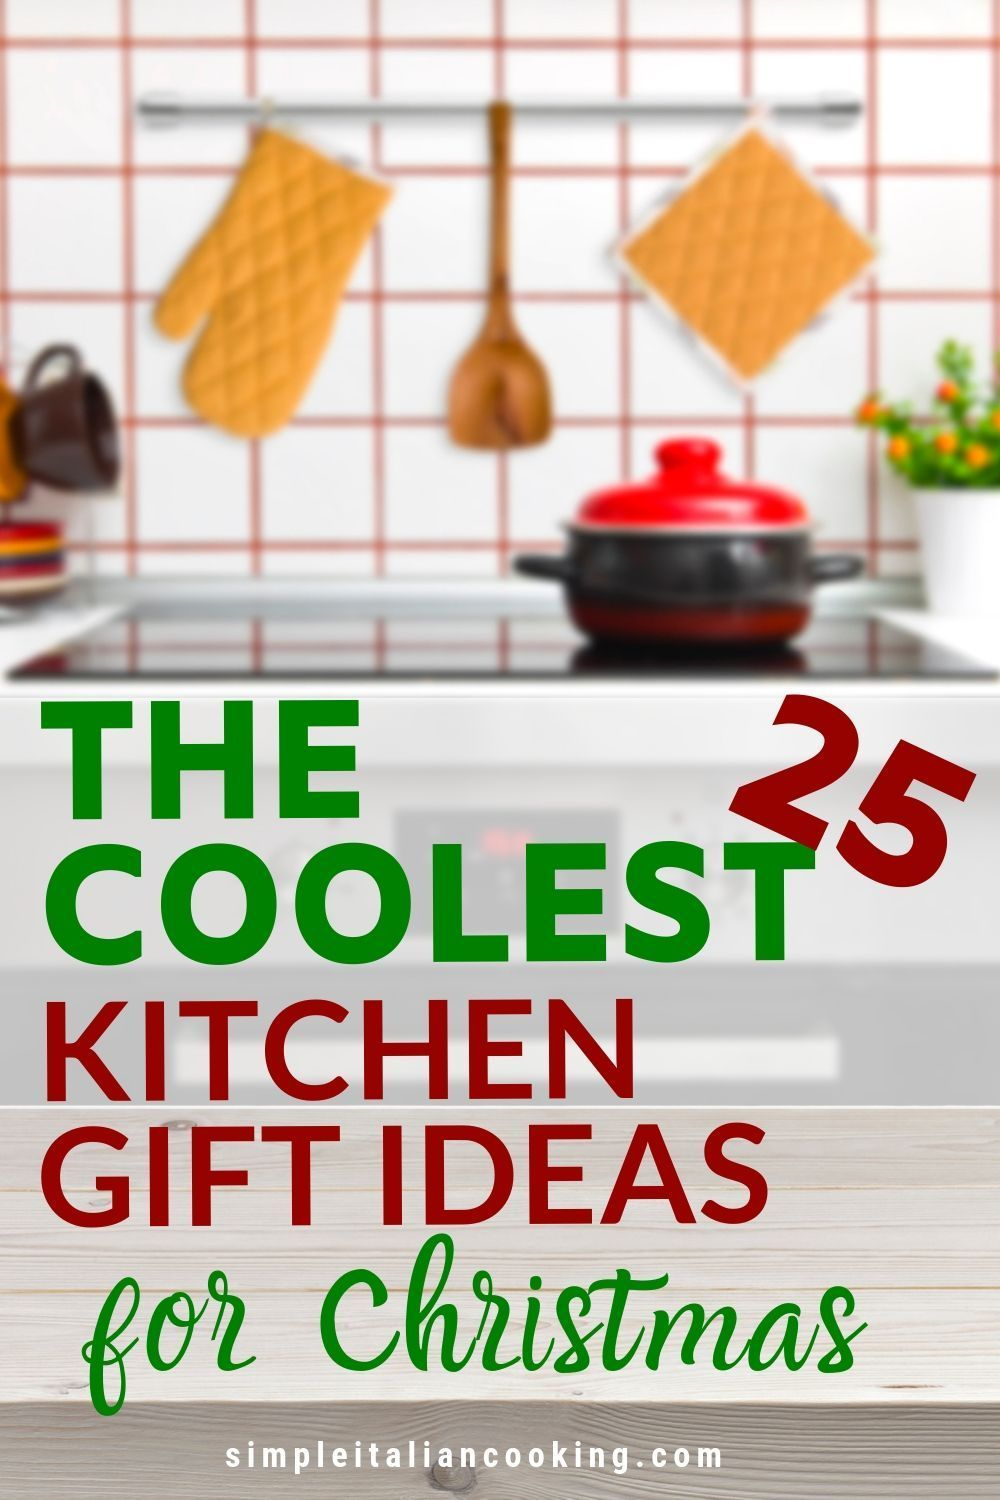 Looking For Christmas Kitchen Gift Ideas For The Holidays Here Are 25 Quality Gift Ideas For Fami Kitchen Gift Kitchen Christmas Gifts Family Christmas Gifts